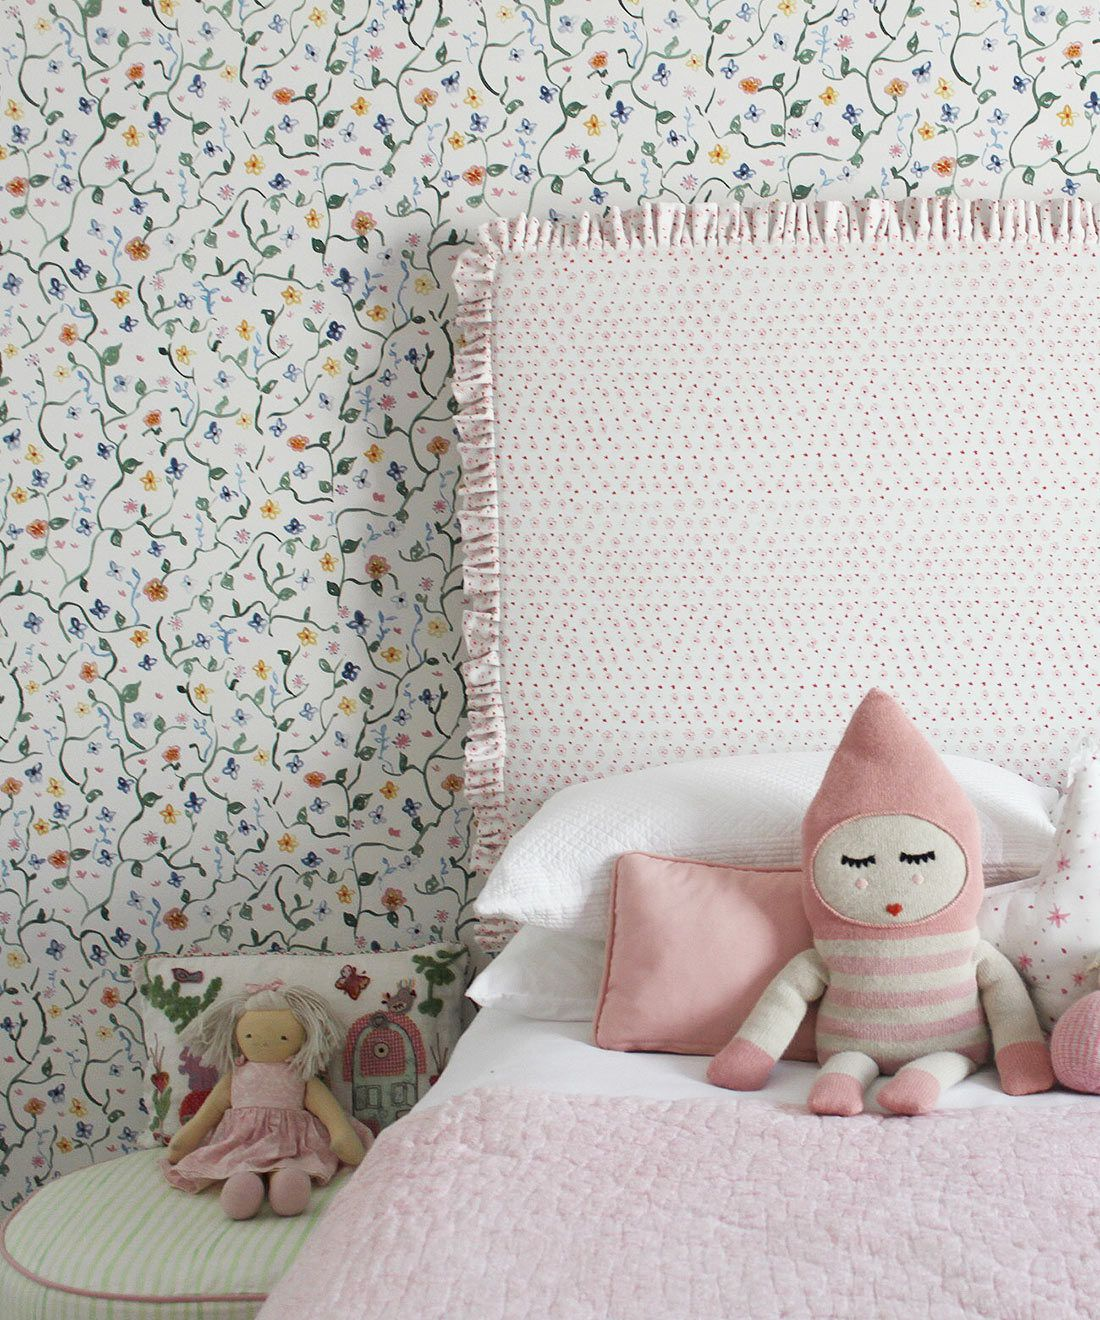 Wild Garden • Dainty Floral Wallpaper • Milton & King USA • Georgia MacMillan • Childrens Wallpaper • Nursery Wallpaper • Bed with pink headboard and pink duvet